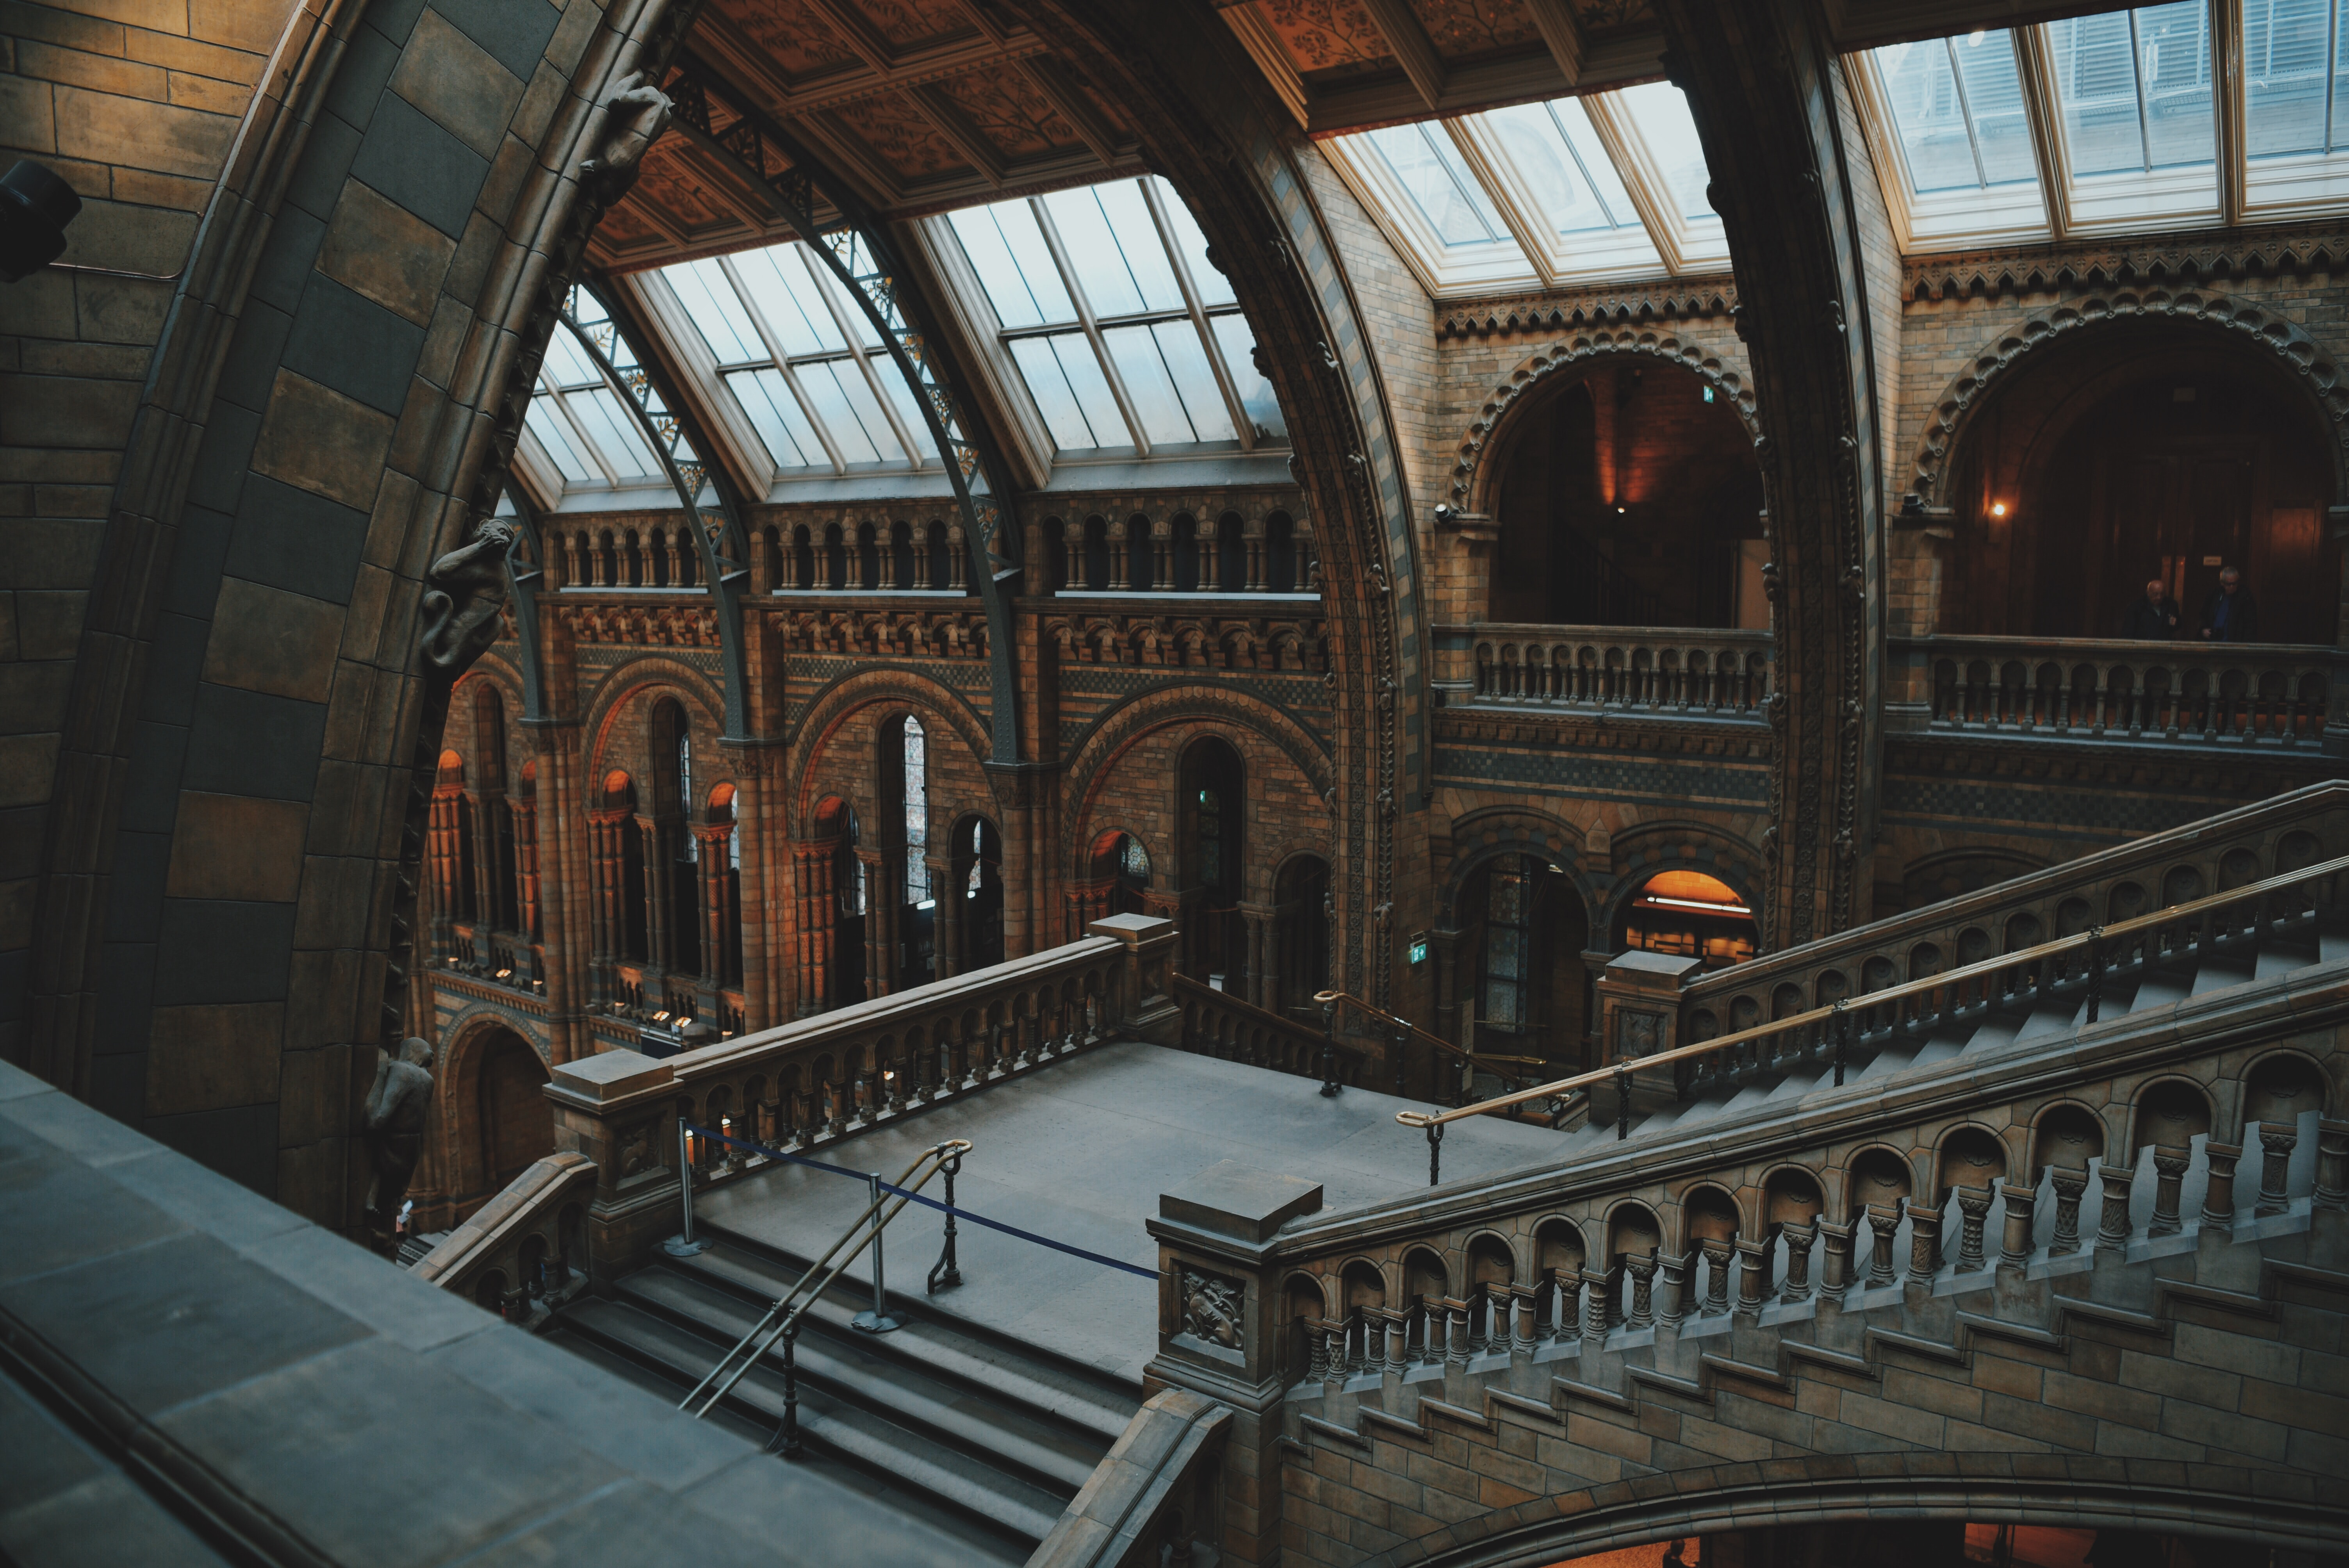 The monumental interior of the National History Museum in London